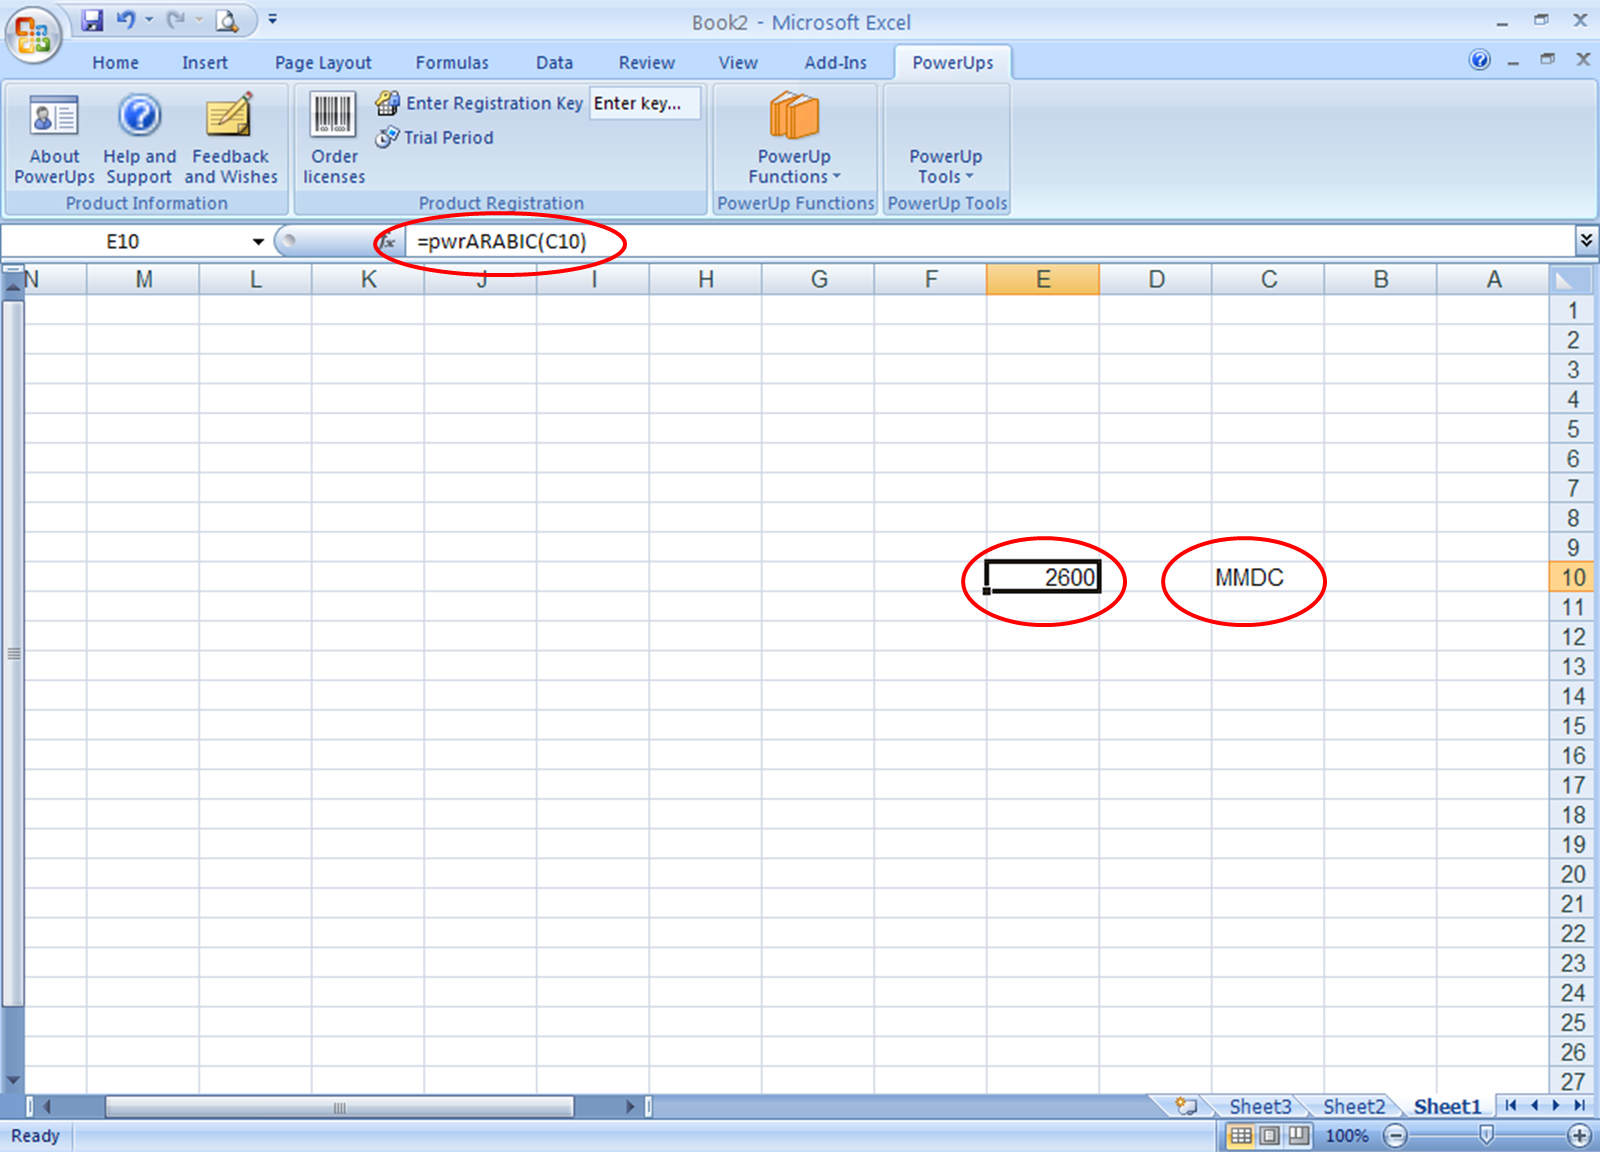 Workbooks worksheets on roman numerals : Converting Roman numeral Text to Numbers in Excel